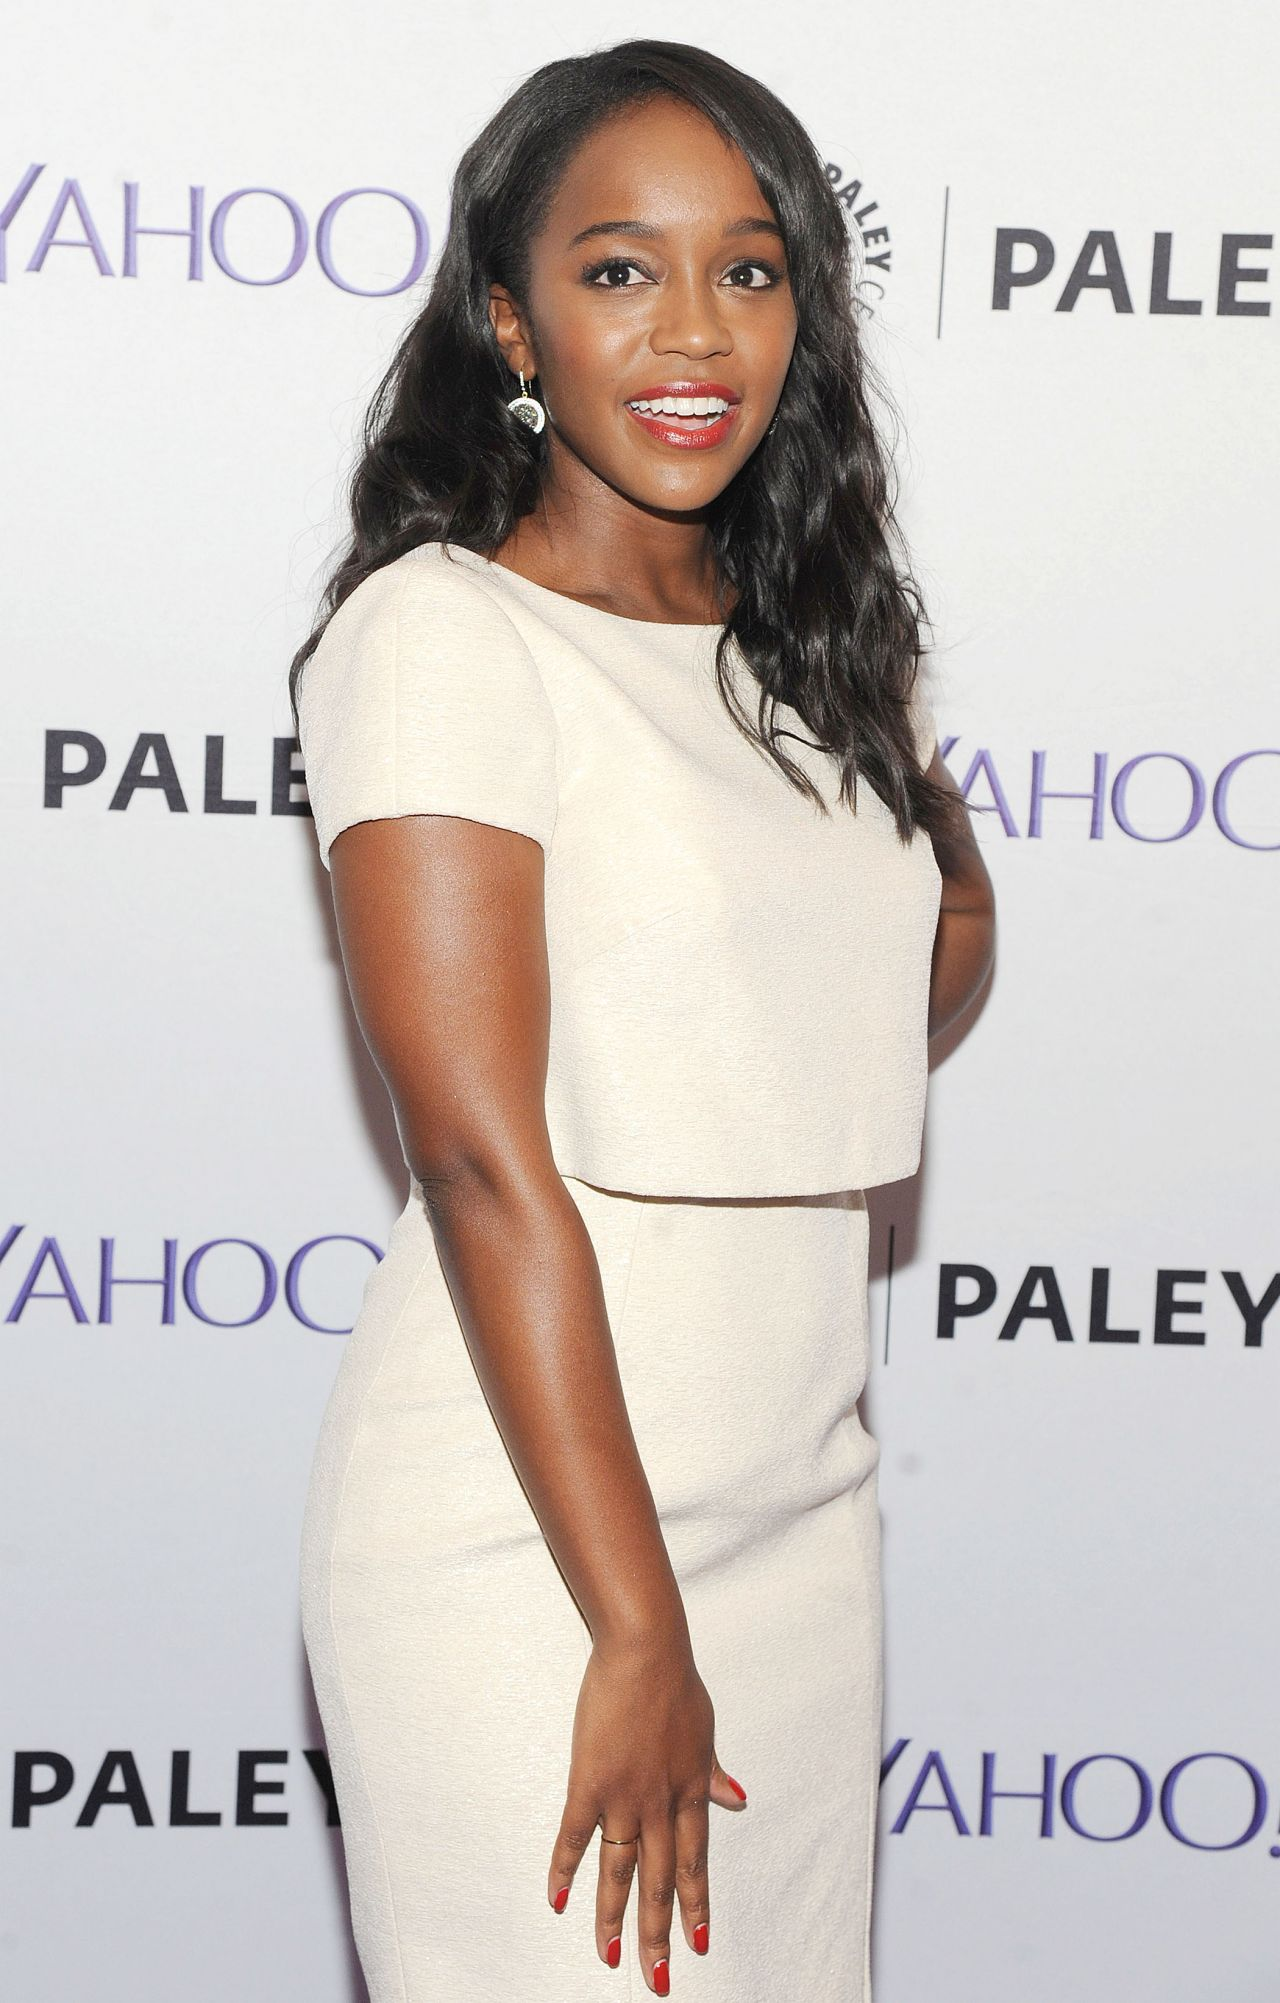 Pictures: Aja Naomi King at PaleyLive NY Presents the Cast of 'How to Get Away with Murder' in New York